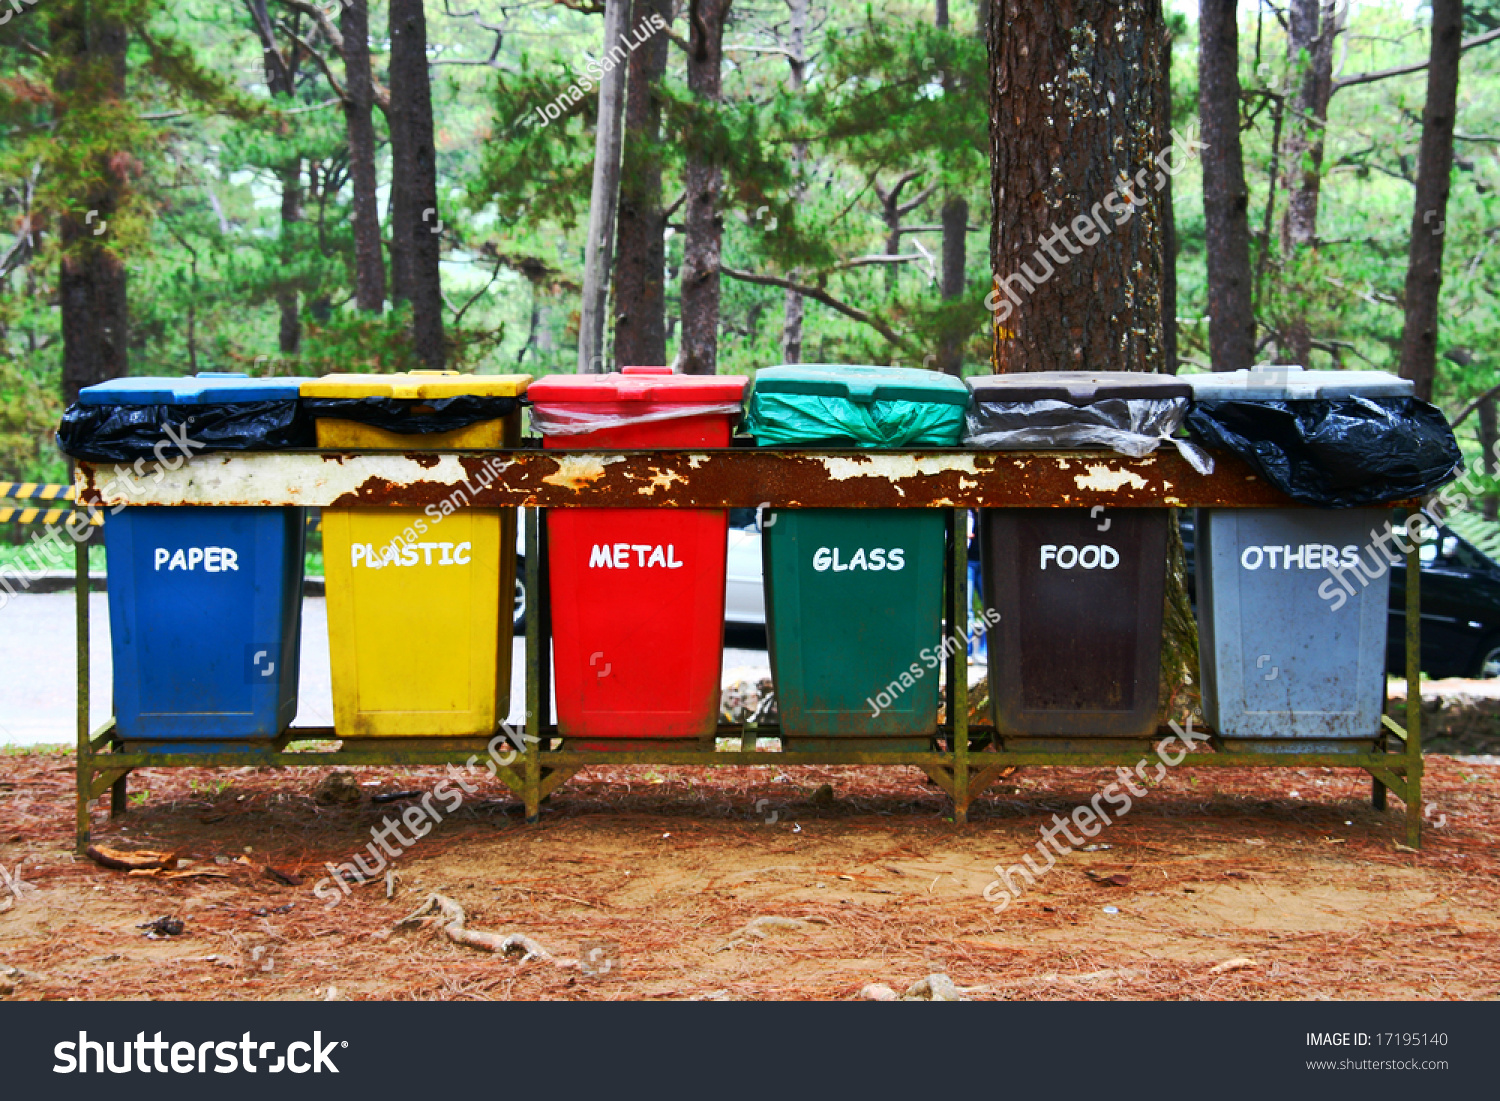 Little River Springs Branford Fl besides Recycle Bin I p 1569 furthermore 320 Sq Covered Park Grill With Utility Shelf together with Grill Bbq Park Grill Picnic Large moreover mercial Playground Slide. on park trash receptacles